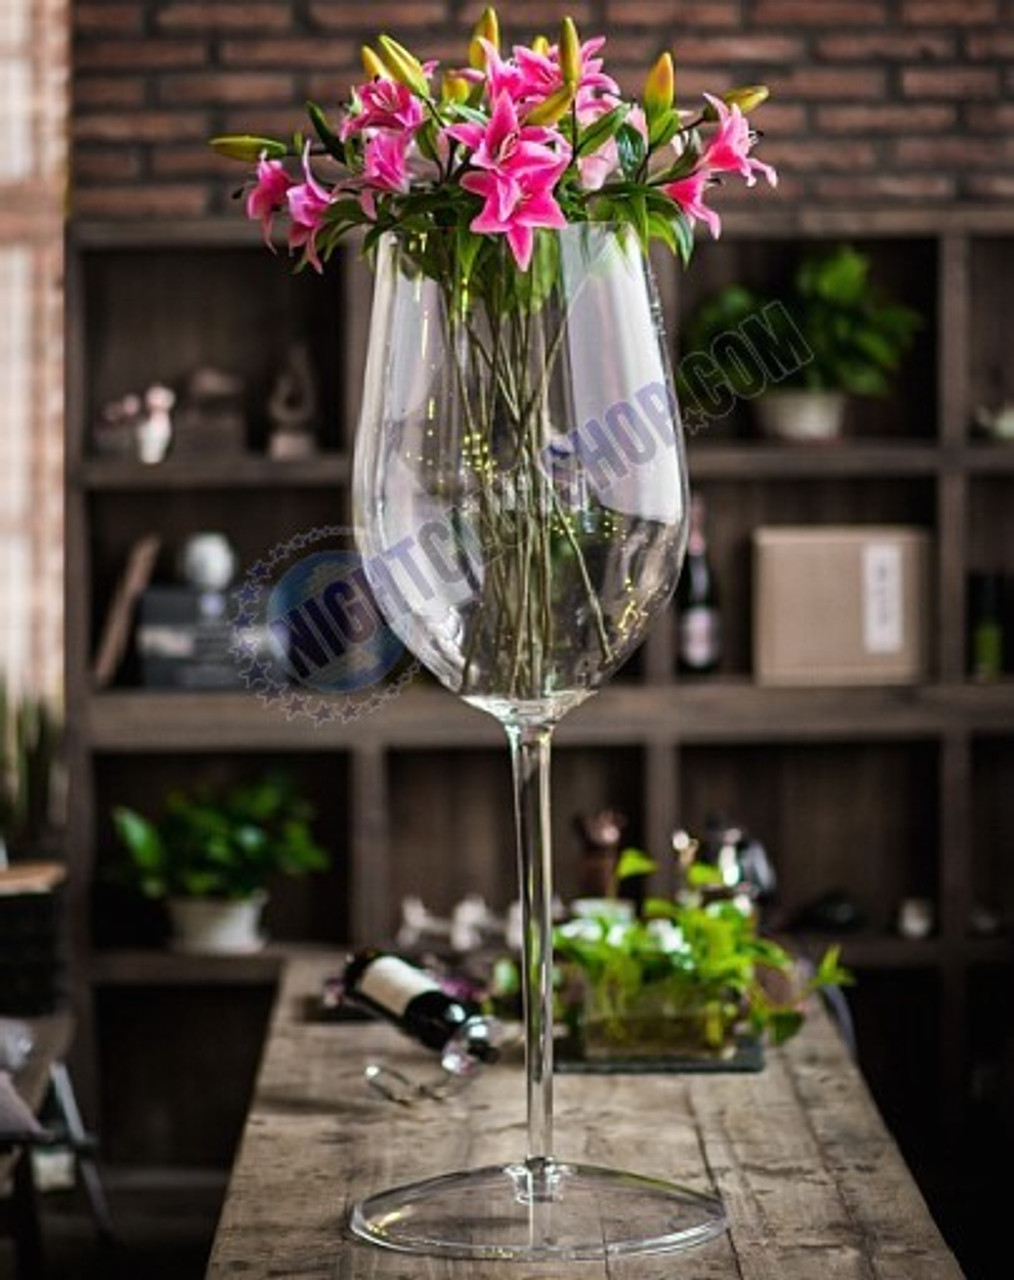 Enormous, Jumbo, Large, XL, Extra, Large, Martini, Cup, Glass, Acrylic, Highly-durable, decor, decoration, Flowers, Holidays, Fall, Spring, Summer